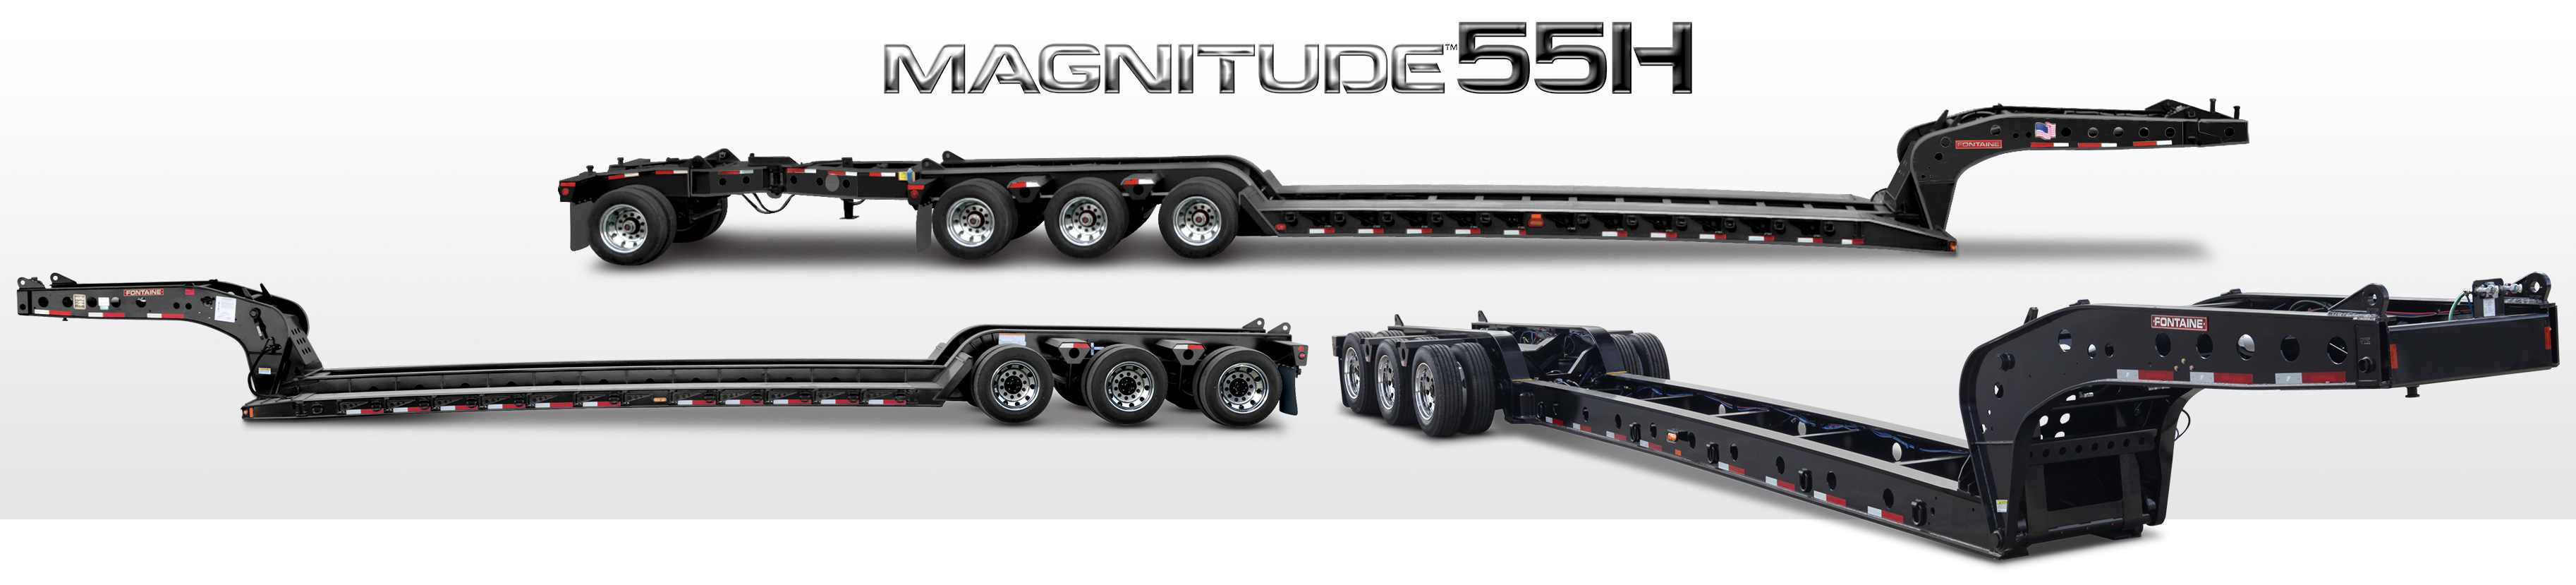 Magnitude 55H lowbed trailers